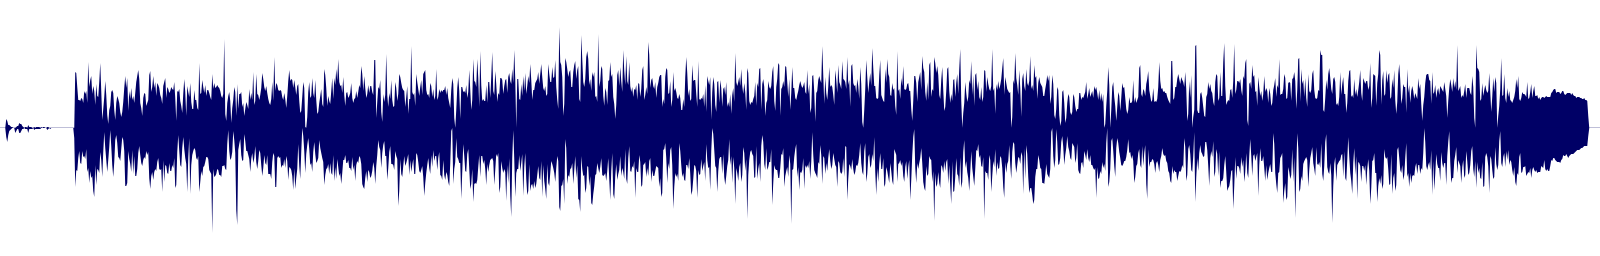 waveform of track #100335